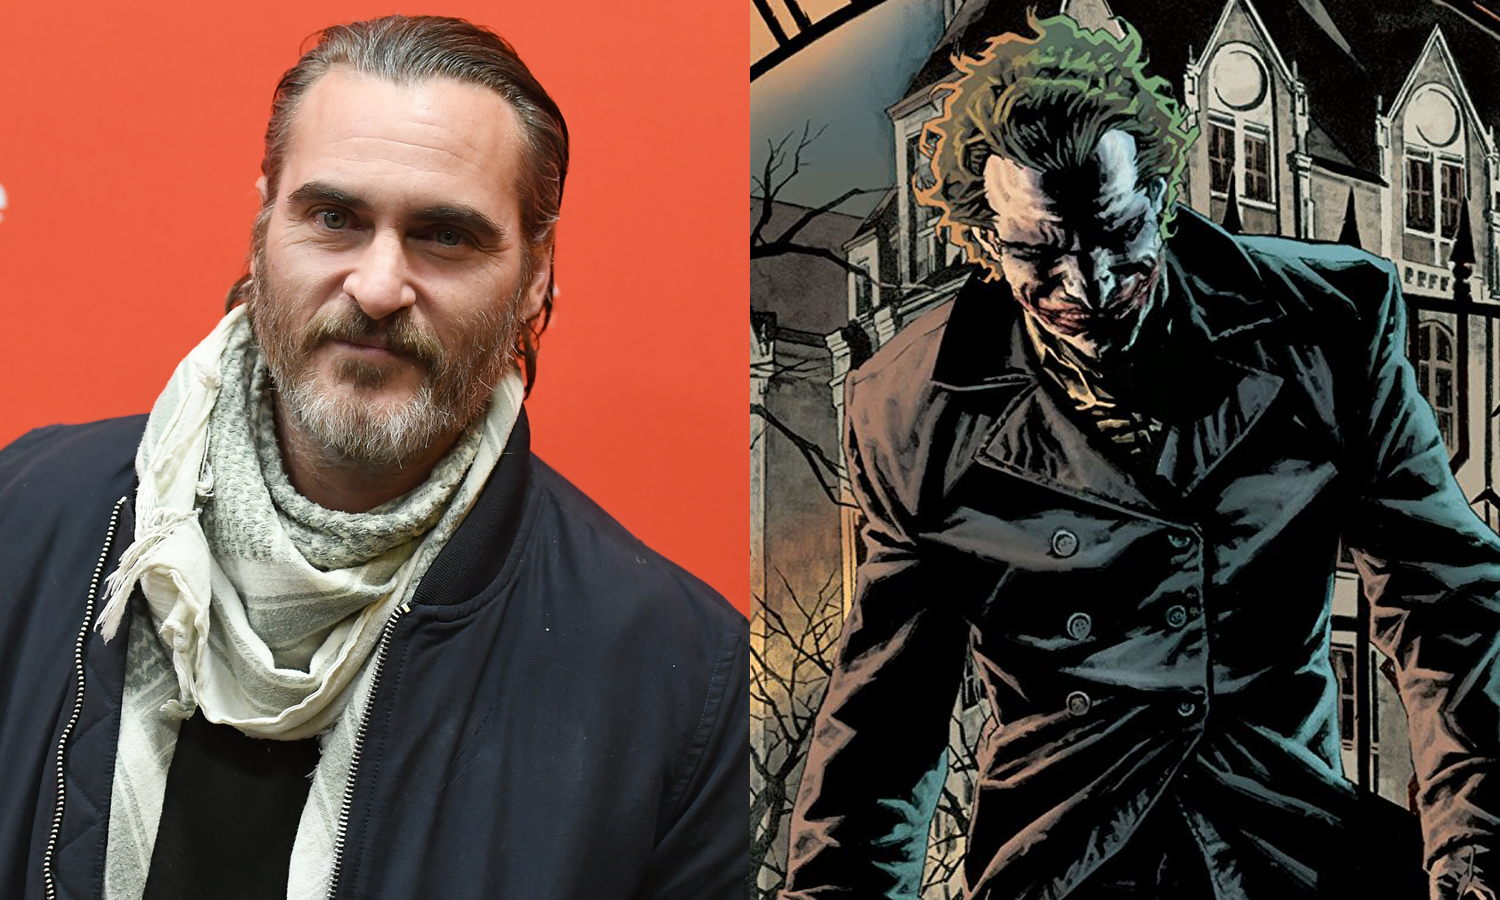 Joaquin Phoenix as the Joker? It could happen